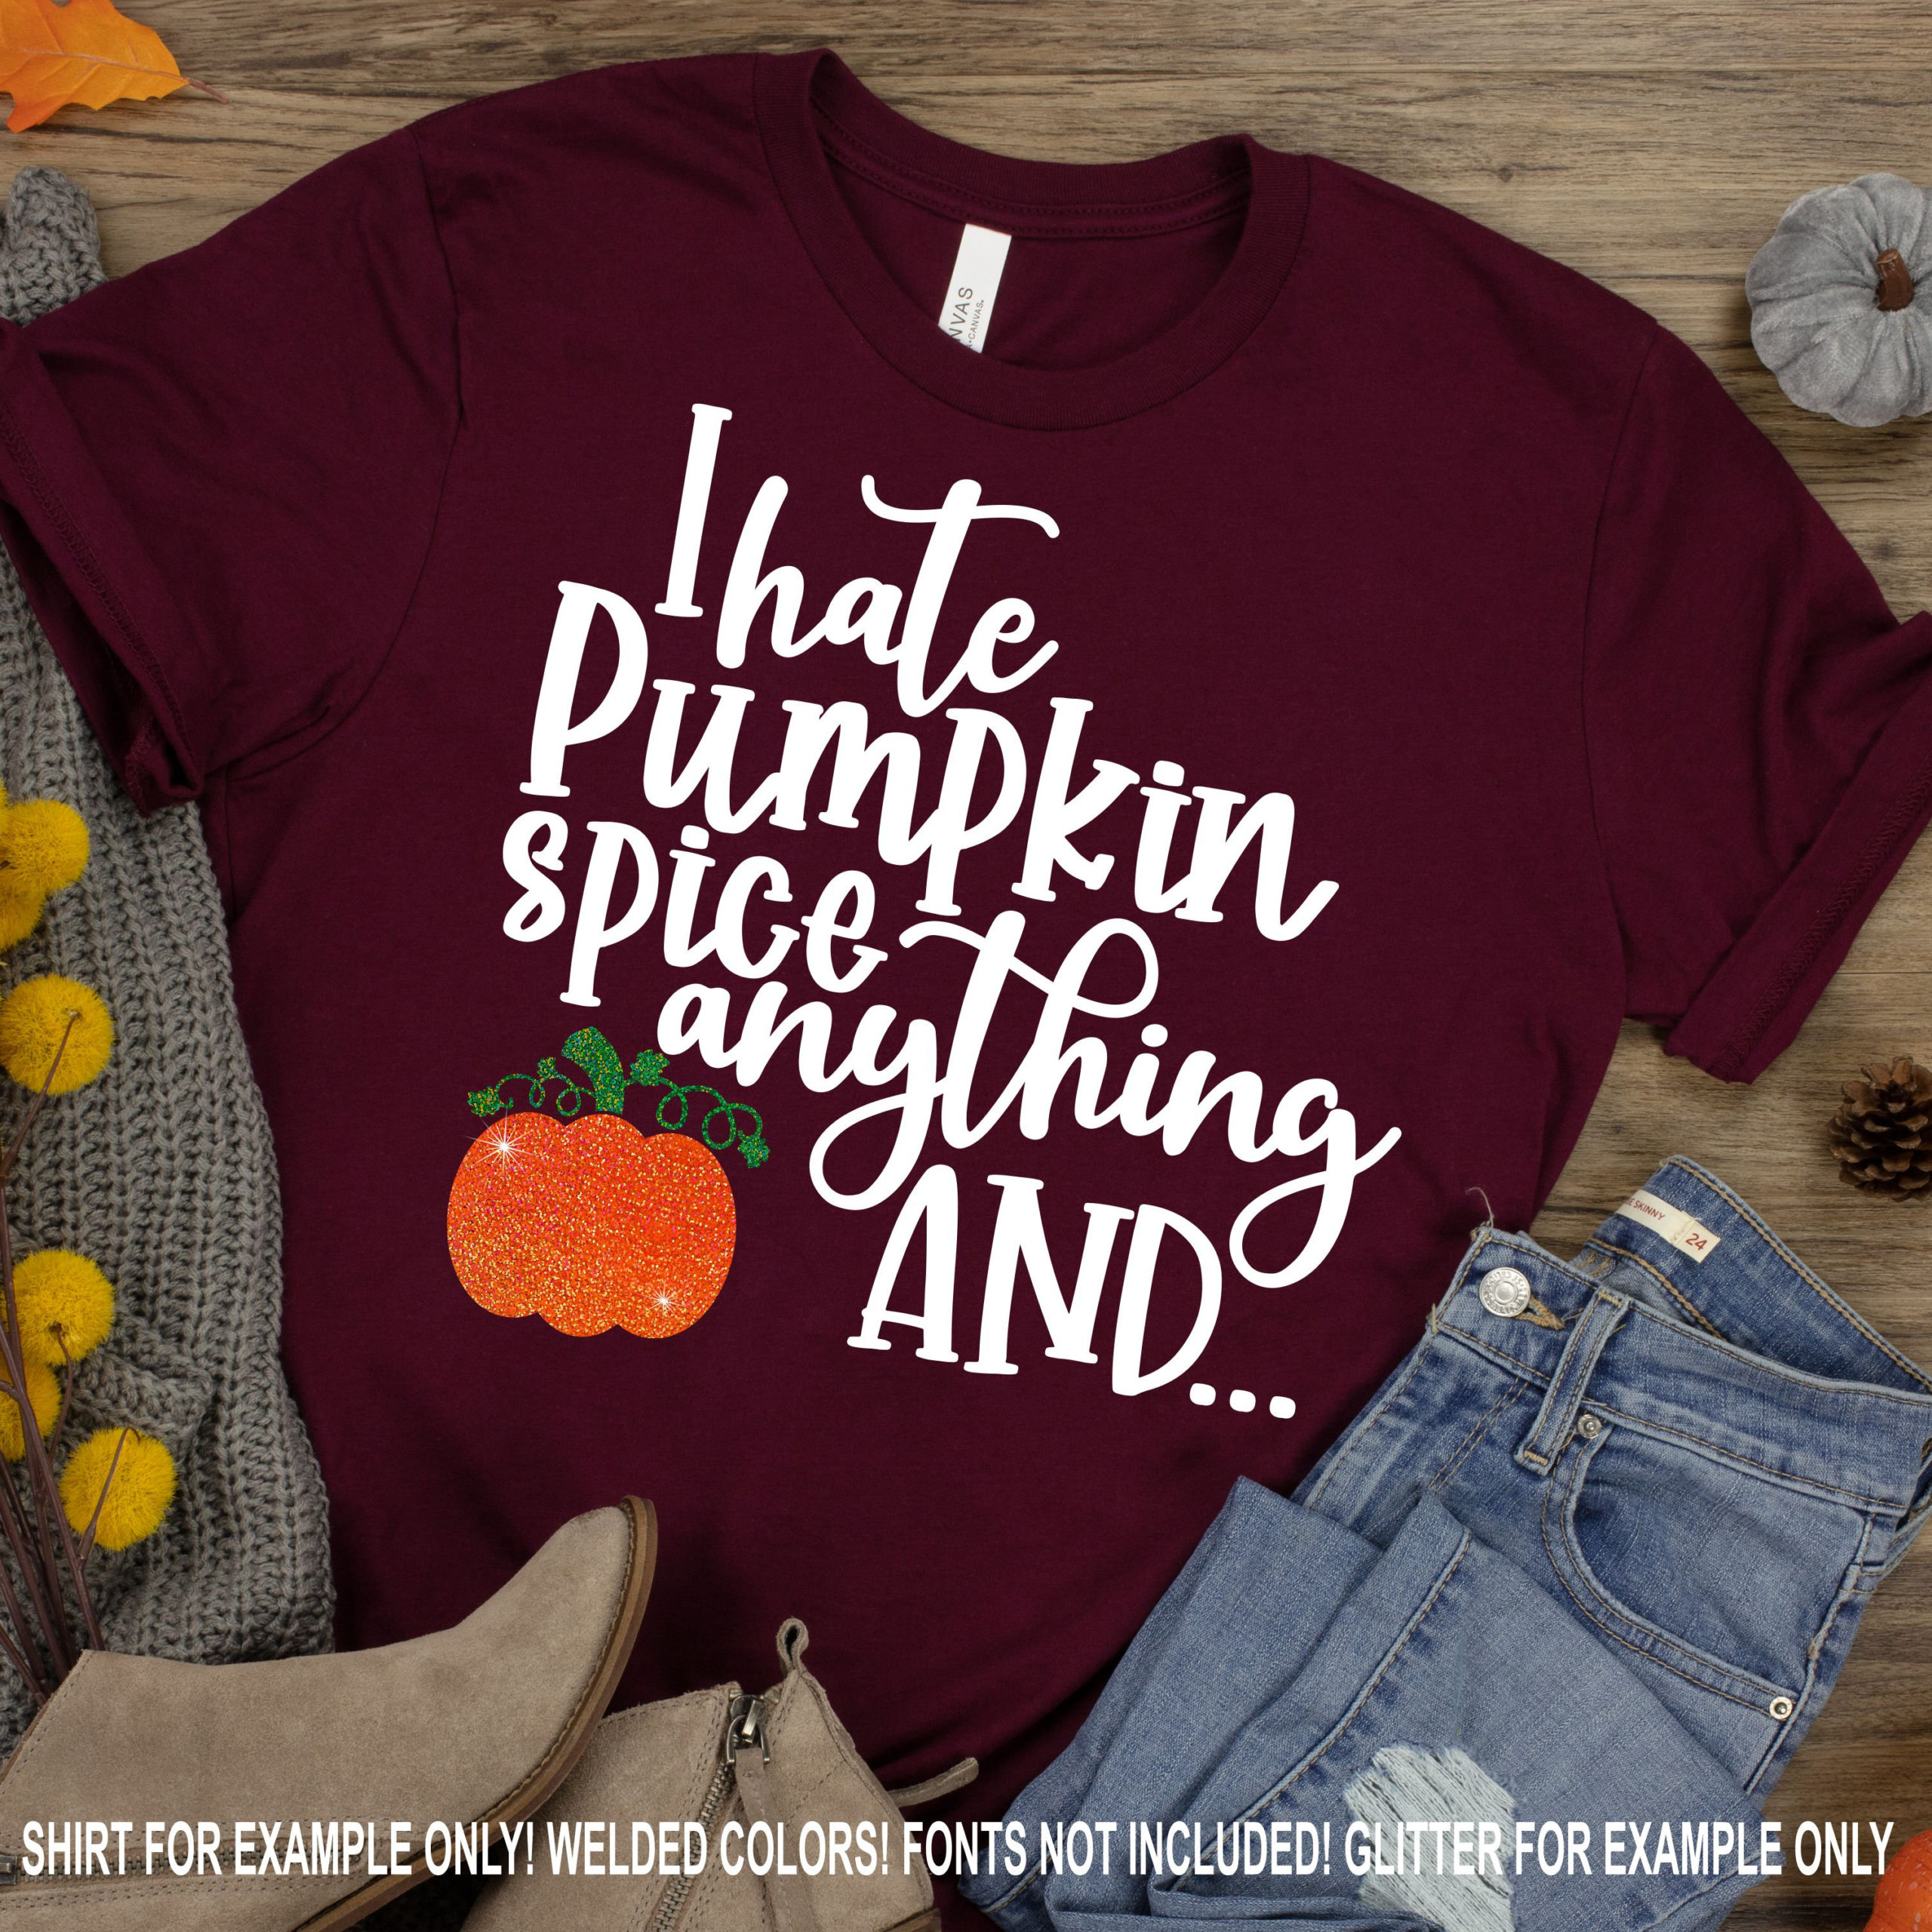 I-hate-pumpkin-spice-svg-pumpkin-svg-fall-svg-anti-pumpkin-spice-svgthanksgiving-svgpumpkin-spice-svg-designscricut-svgsvg-for-mobile-5f7219c2